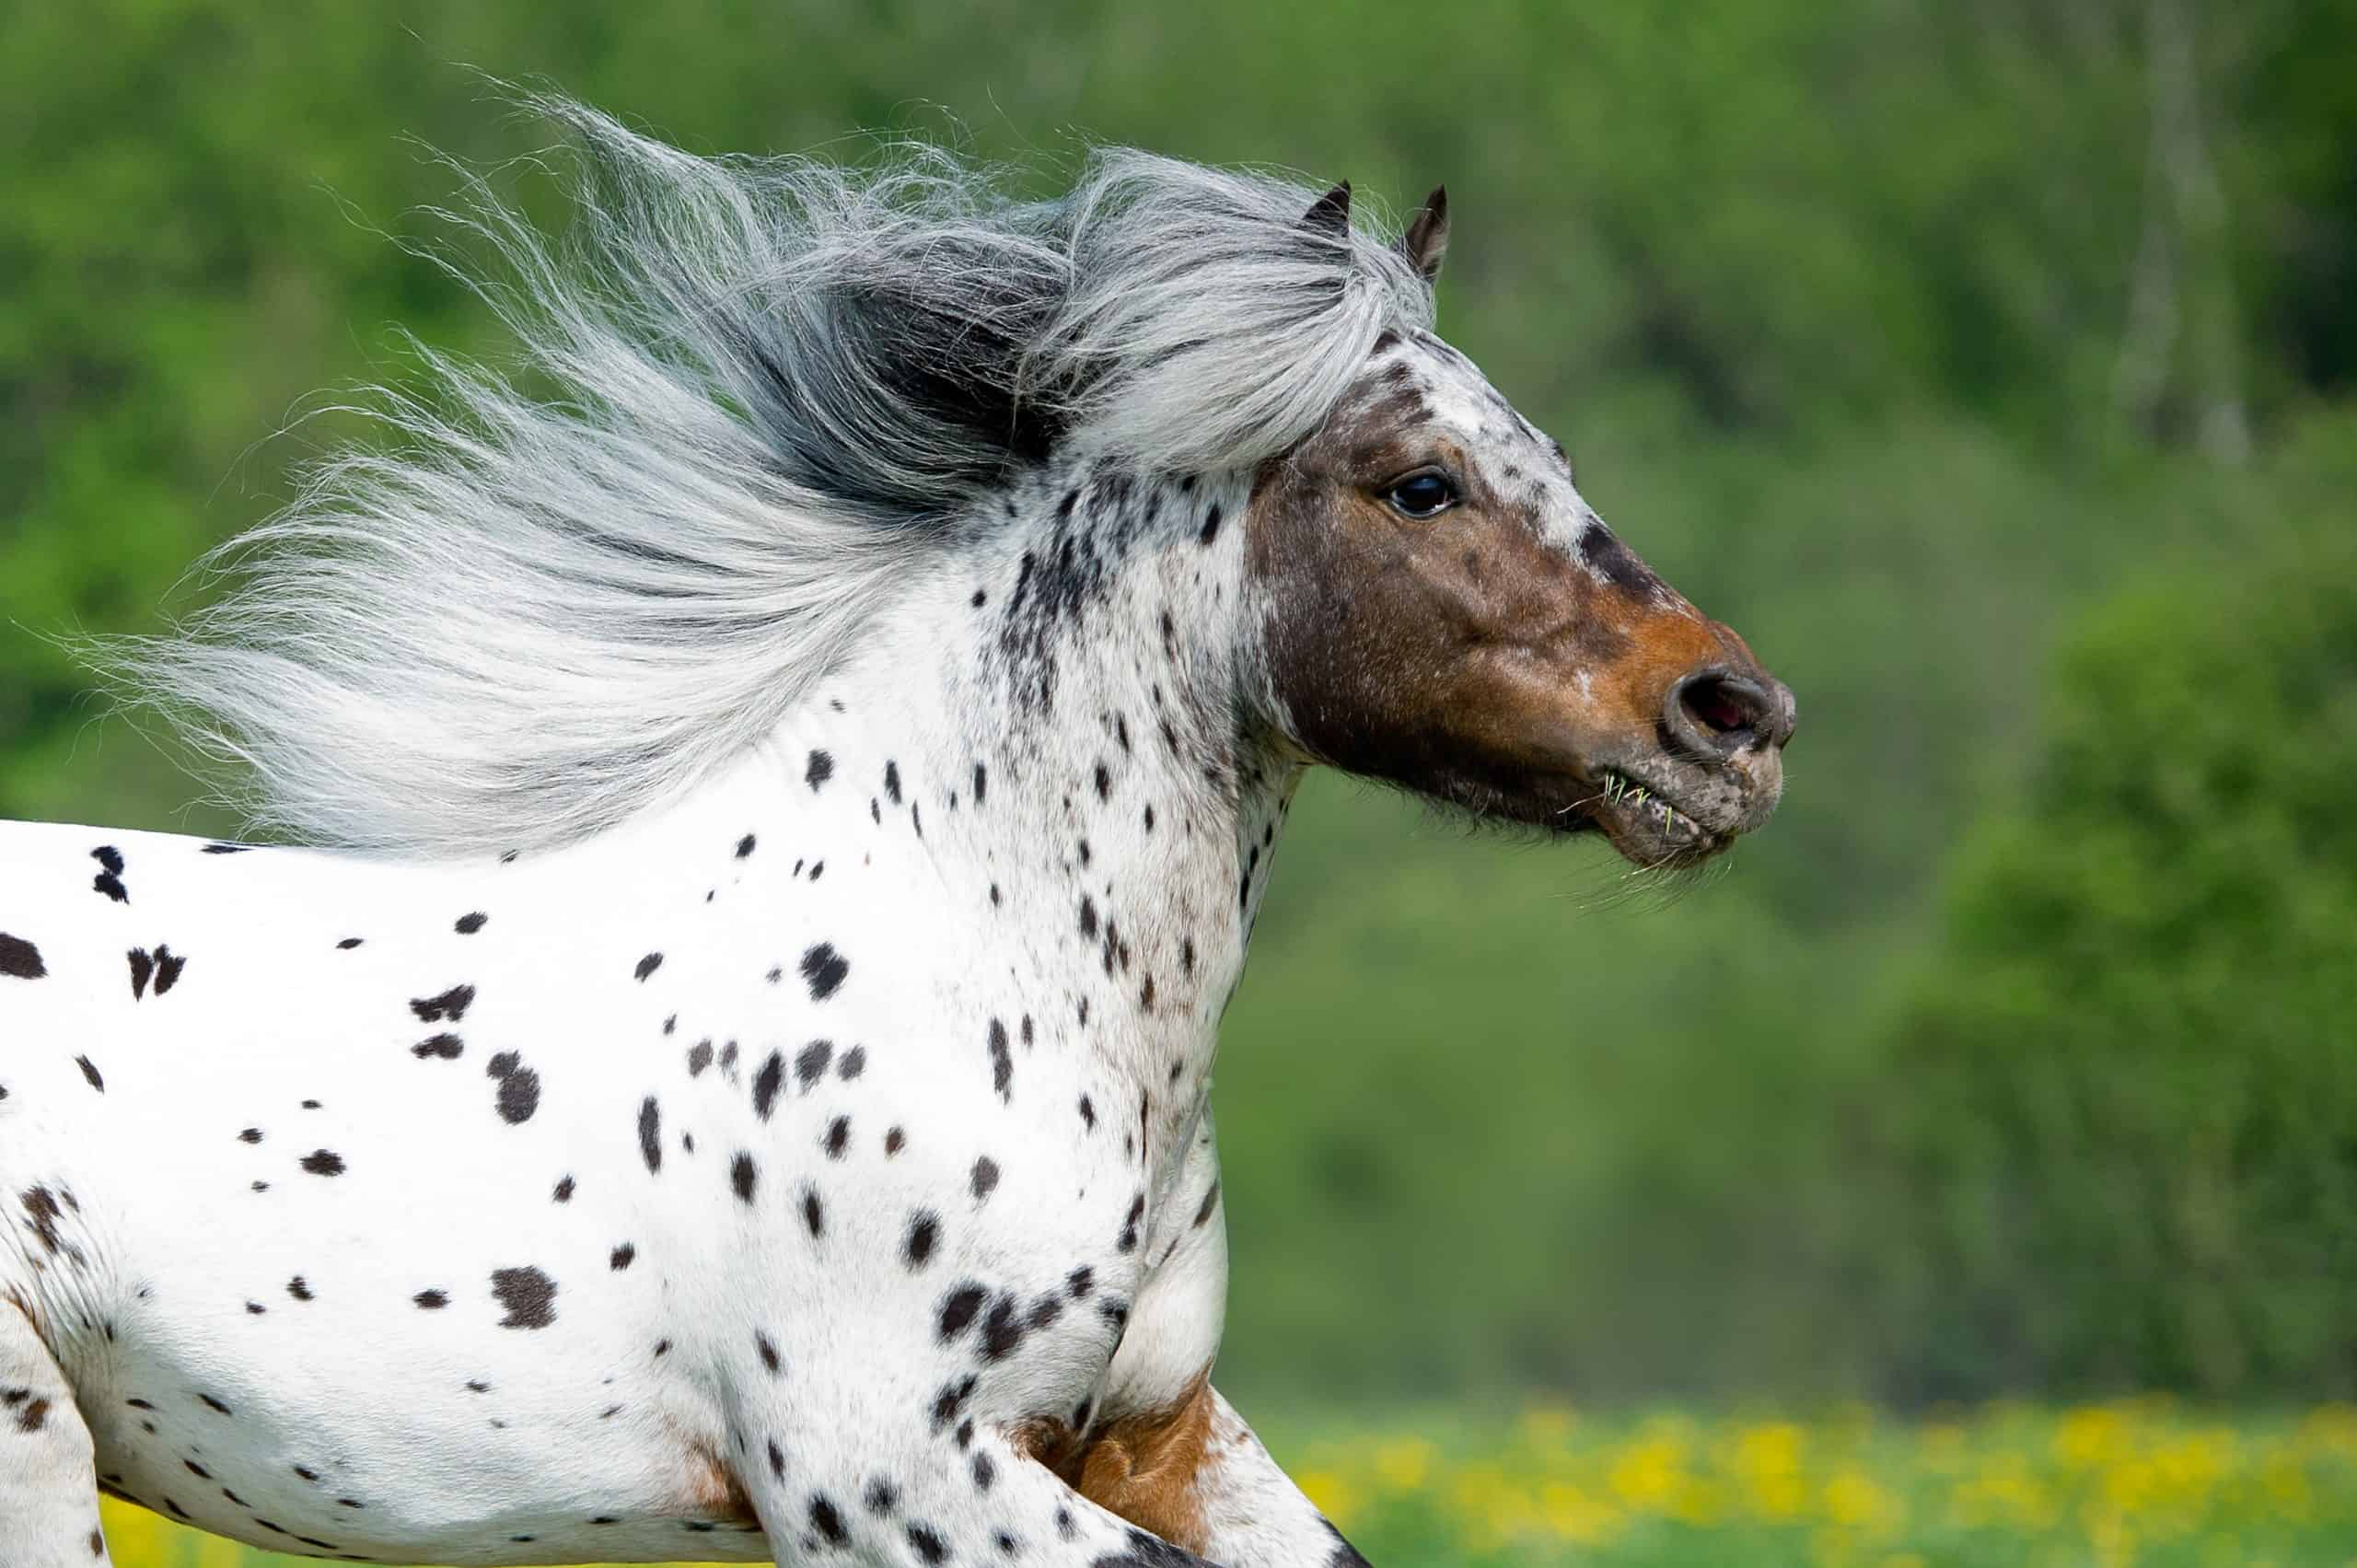 20 Gorgeous Images Of Appaloosa Horses To Make Your Day